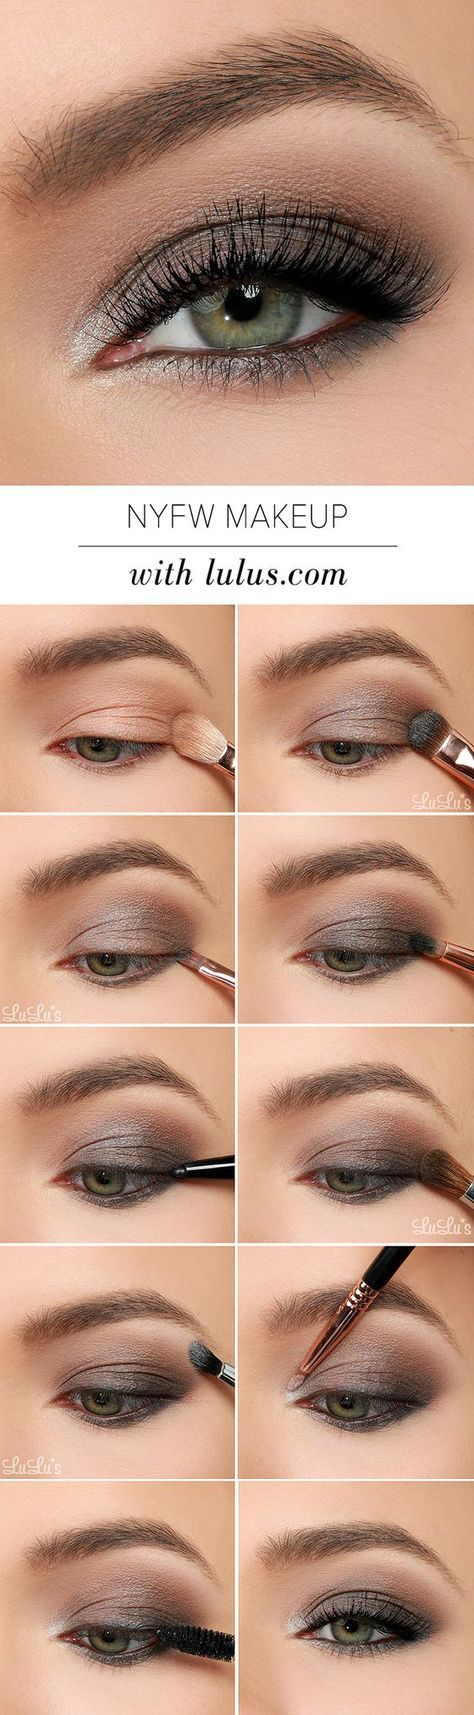 11 easy step by step makeup tutorials for beginners eye makeup 11 easy step by step makeup tutorials for beginners eye makeup ideas baditri Choice Image